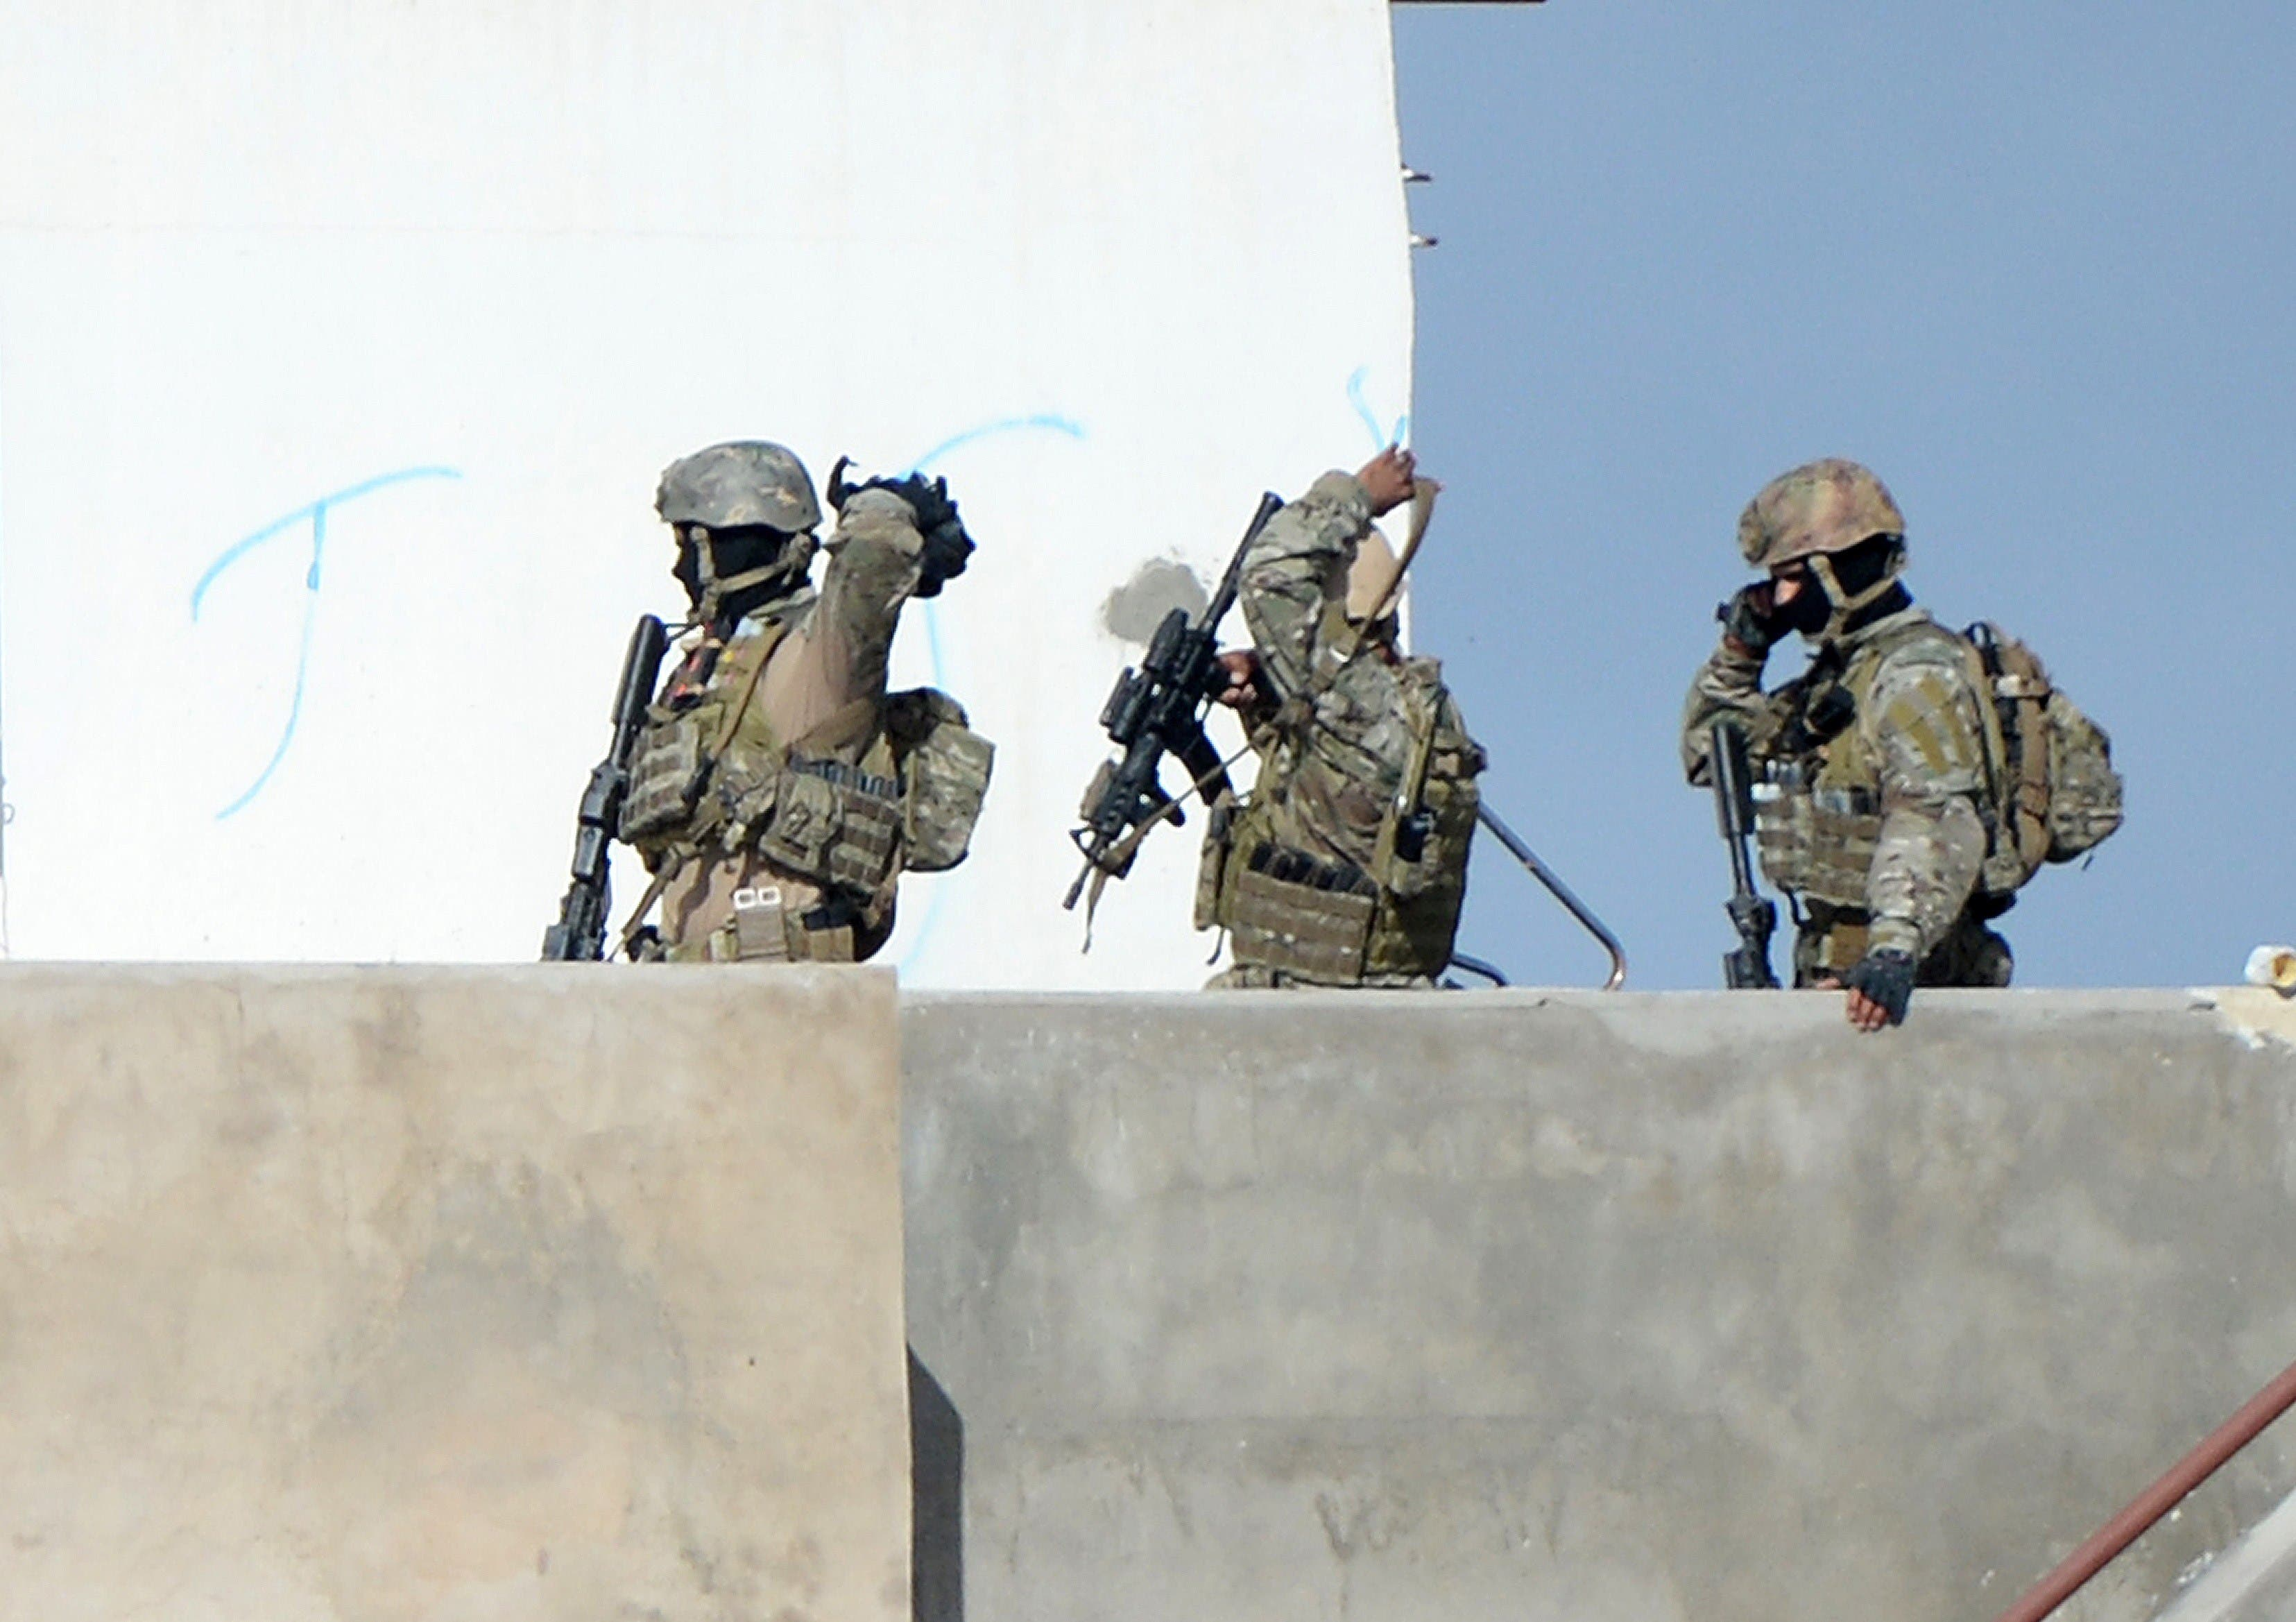 embers of the Tunisian military walk on a balcony during an operation against gunmen in the town of Oued Ellil near the Tunisian capital Tunis on Oct. 24, 2014. (AFP)